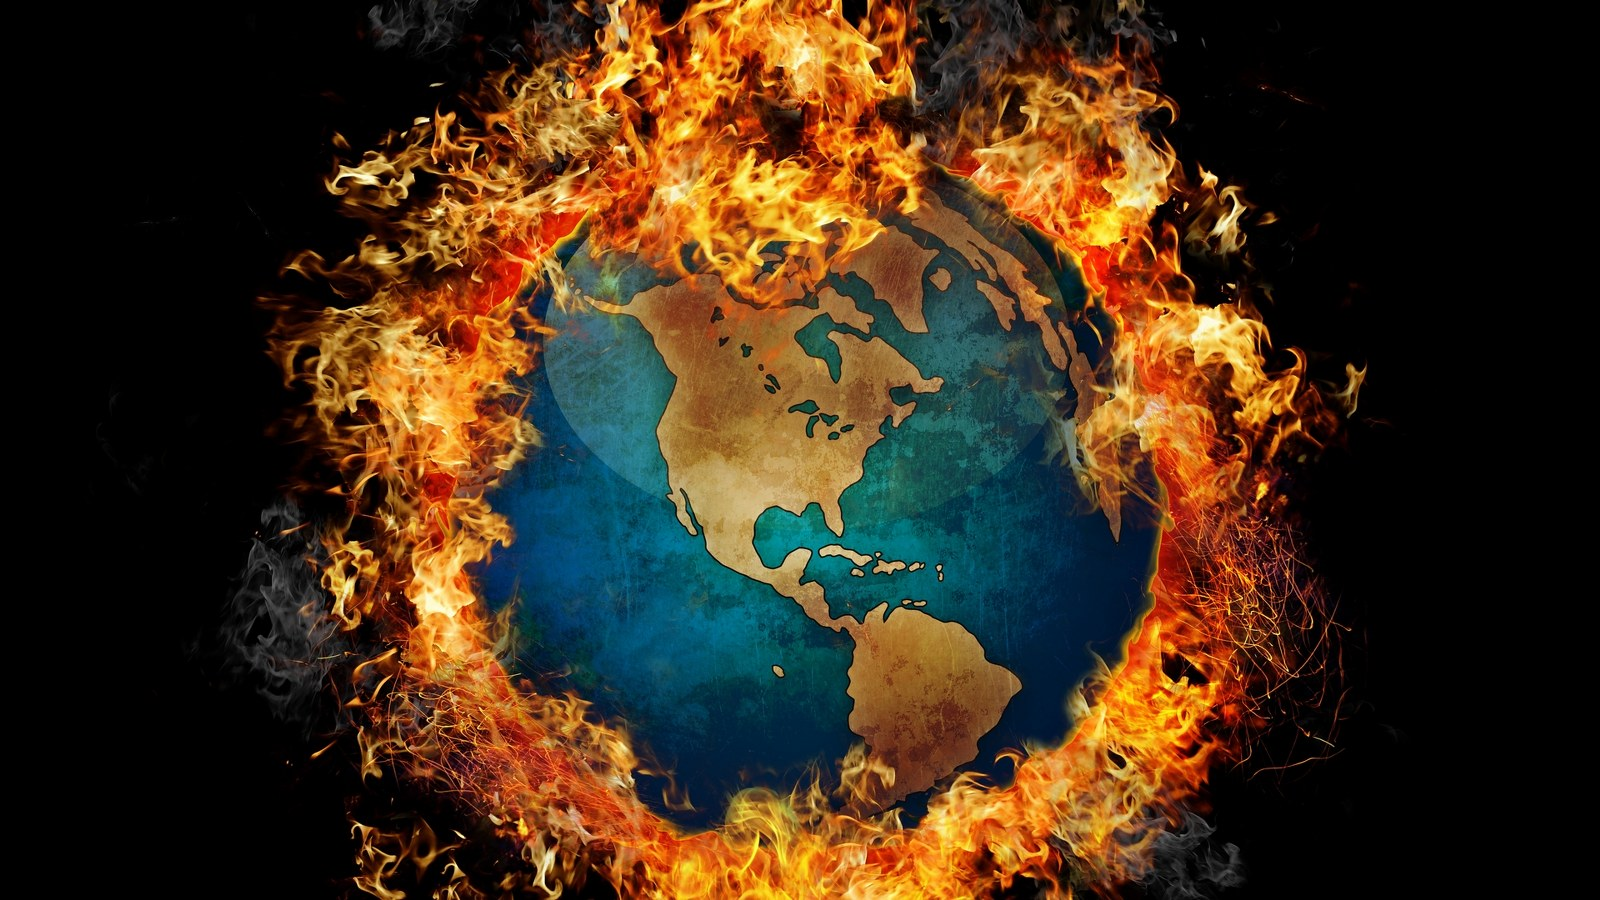 essay on global warming a growing problem Free essays essay about global warming is but is there any real evidence that global warming is a growing problem or is global warming just a big scare tactic.